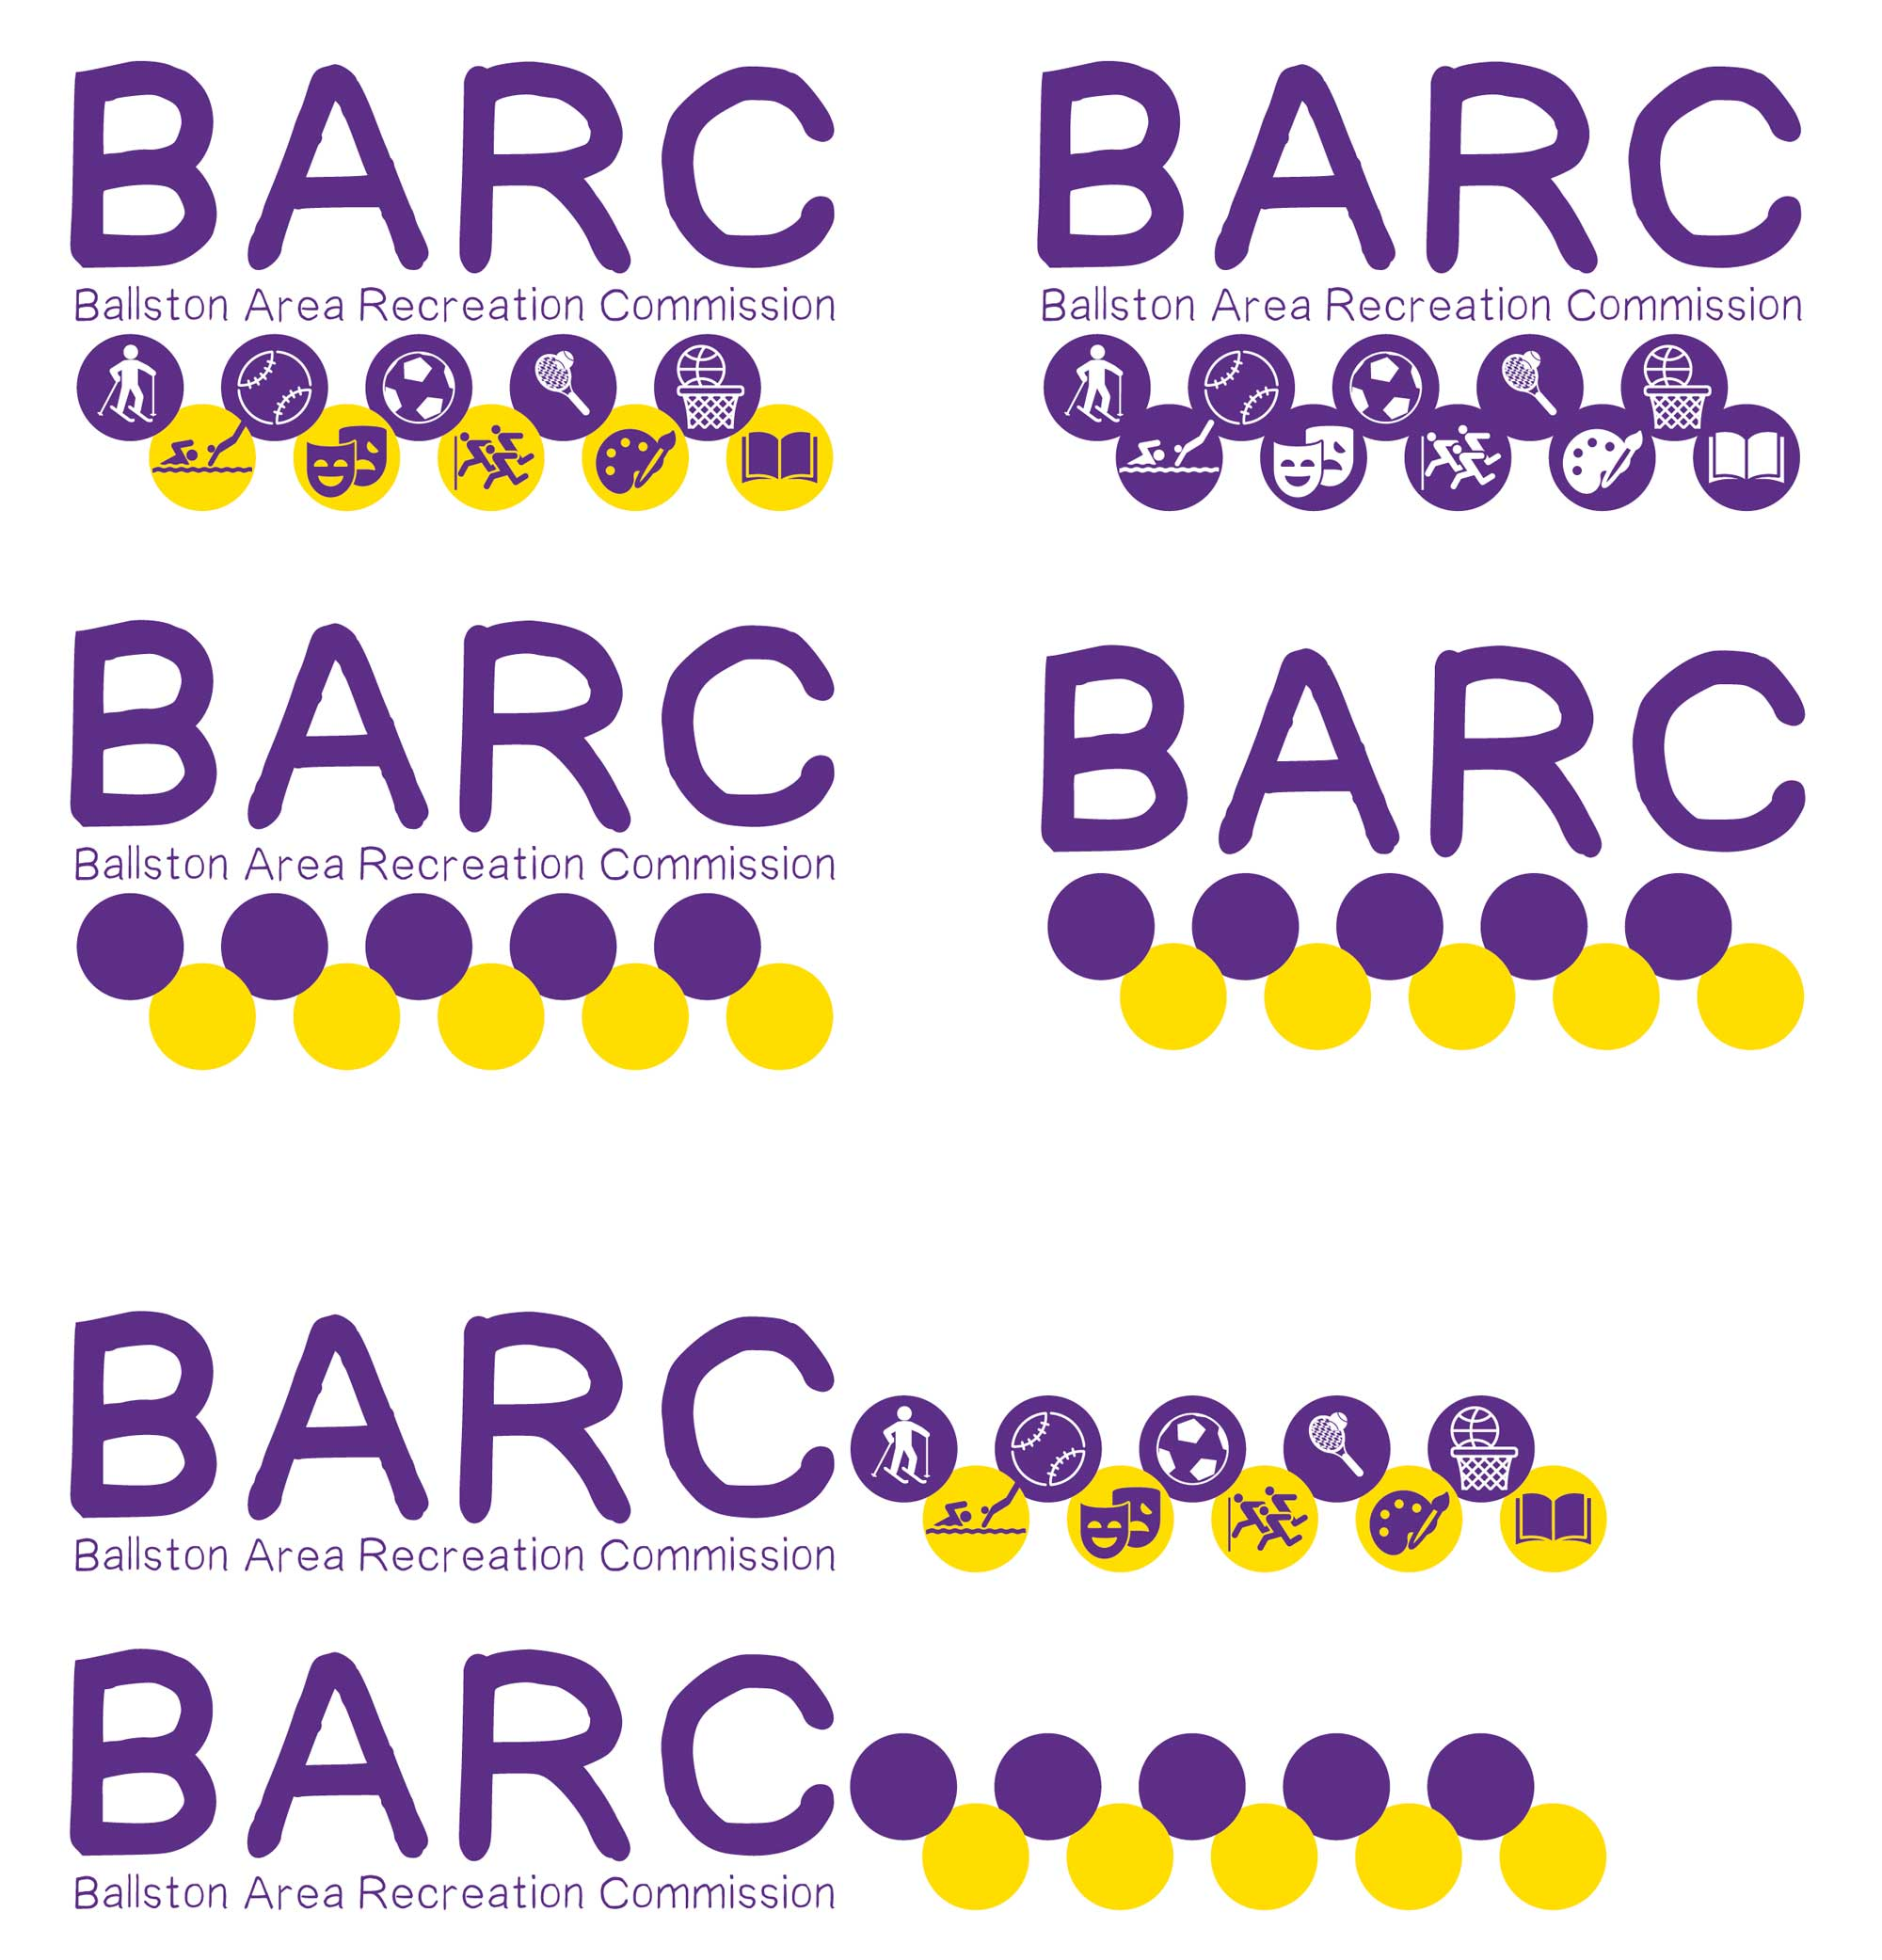 Image showing several variations of the BARC logo.